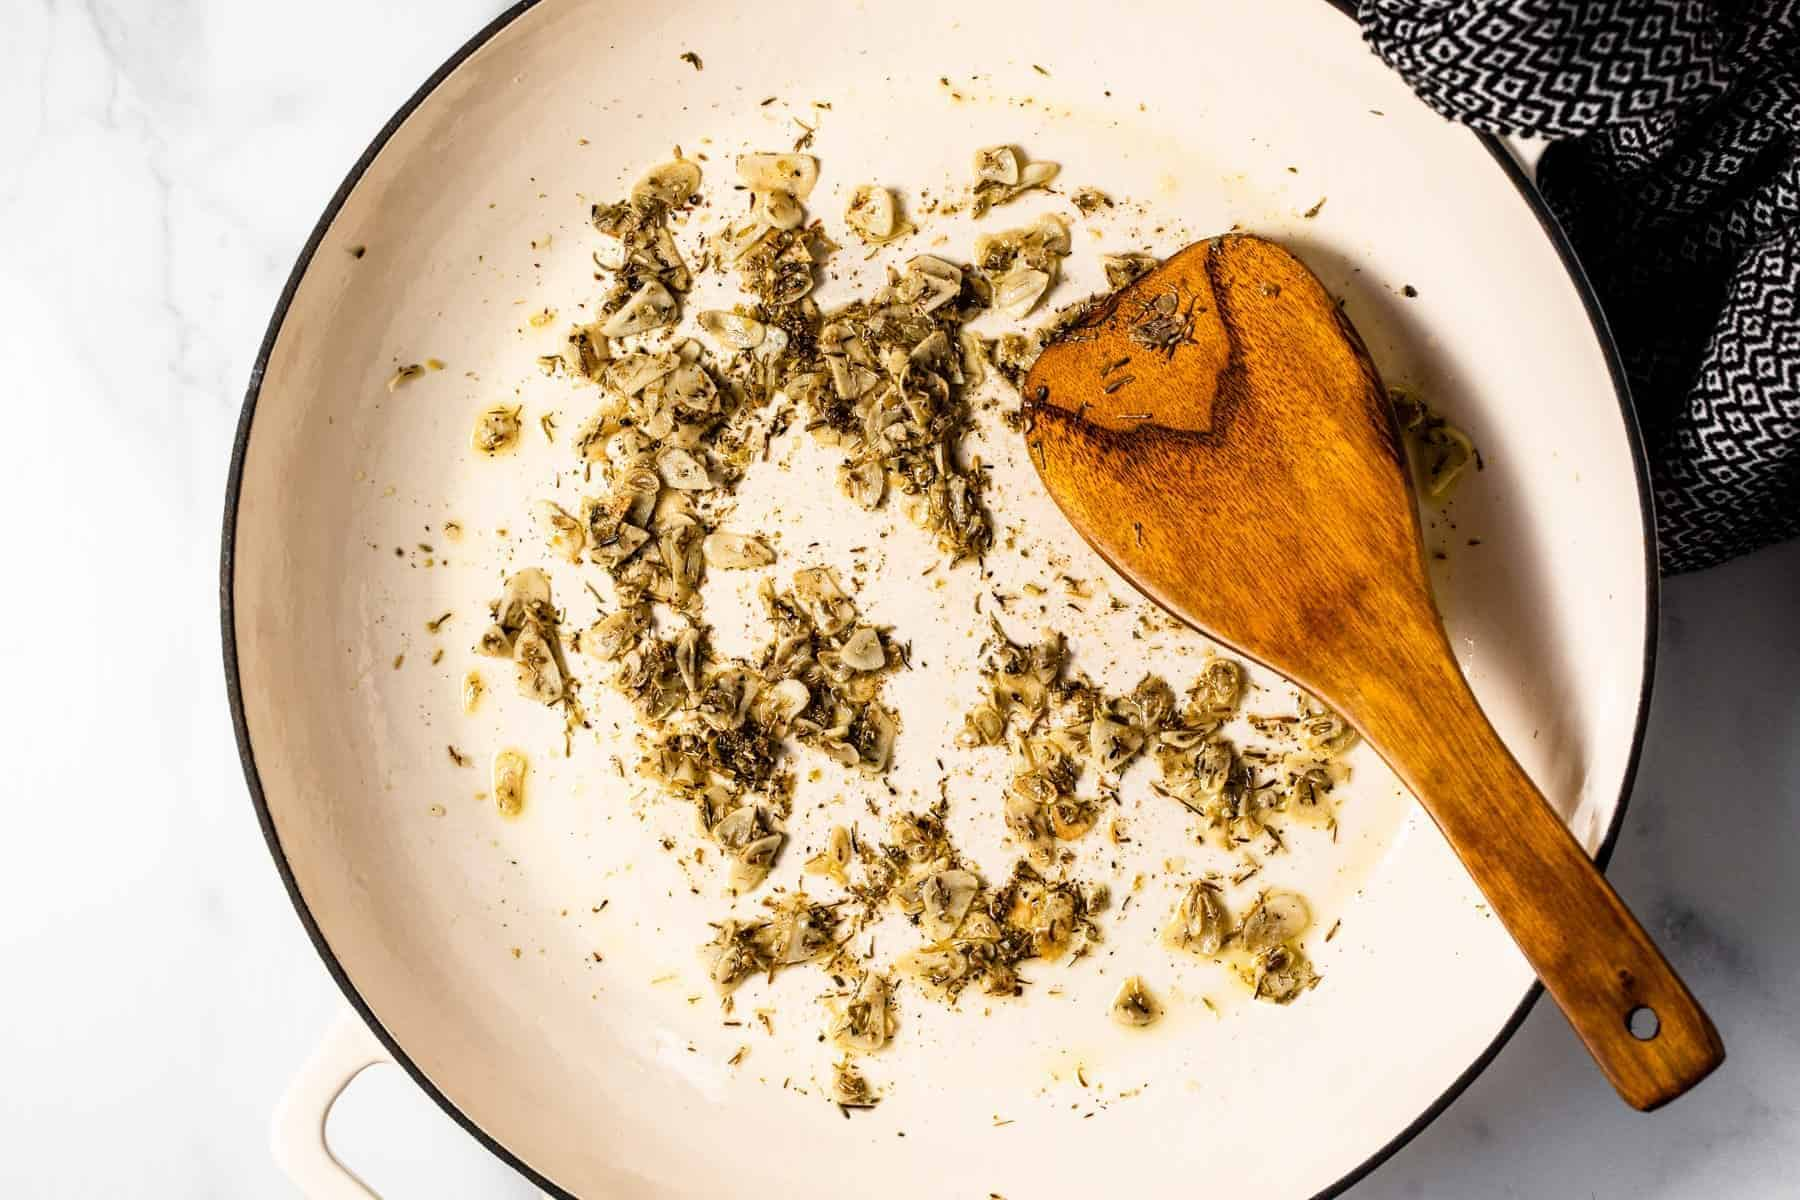 Large white pan filled with sautéed garlic and dried herbs